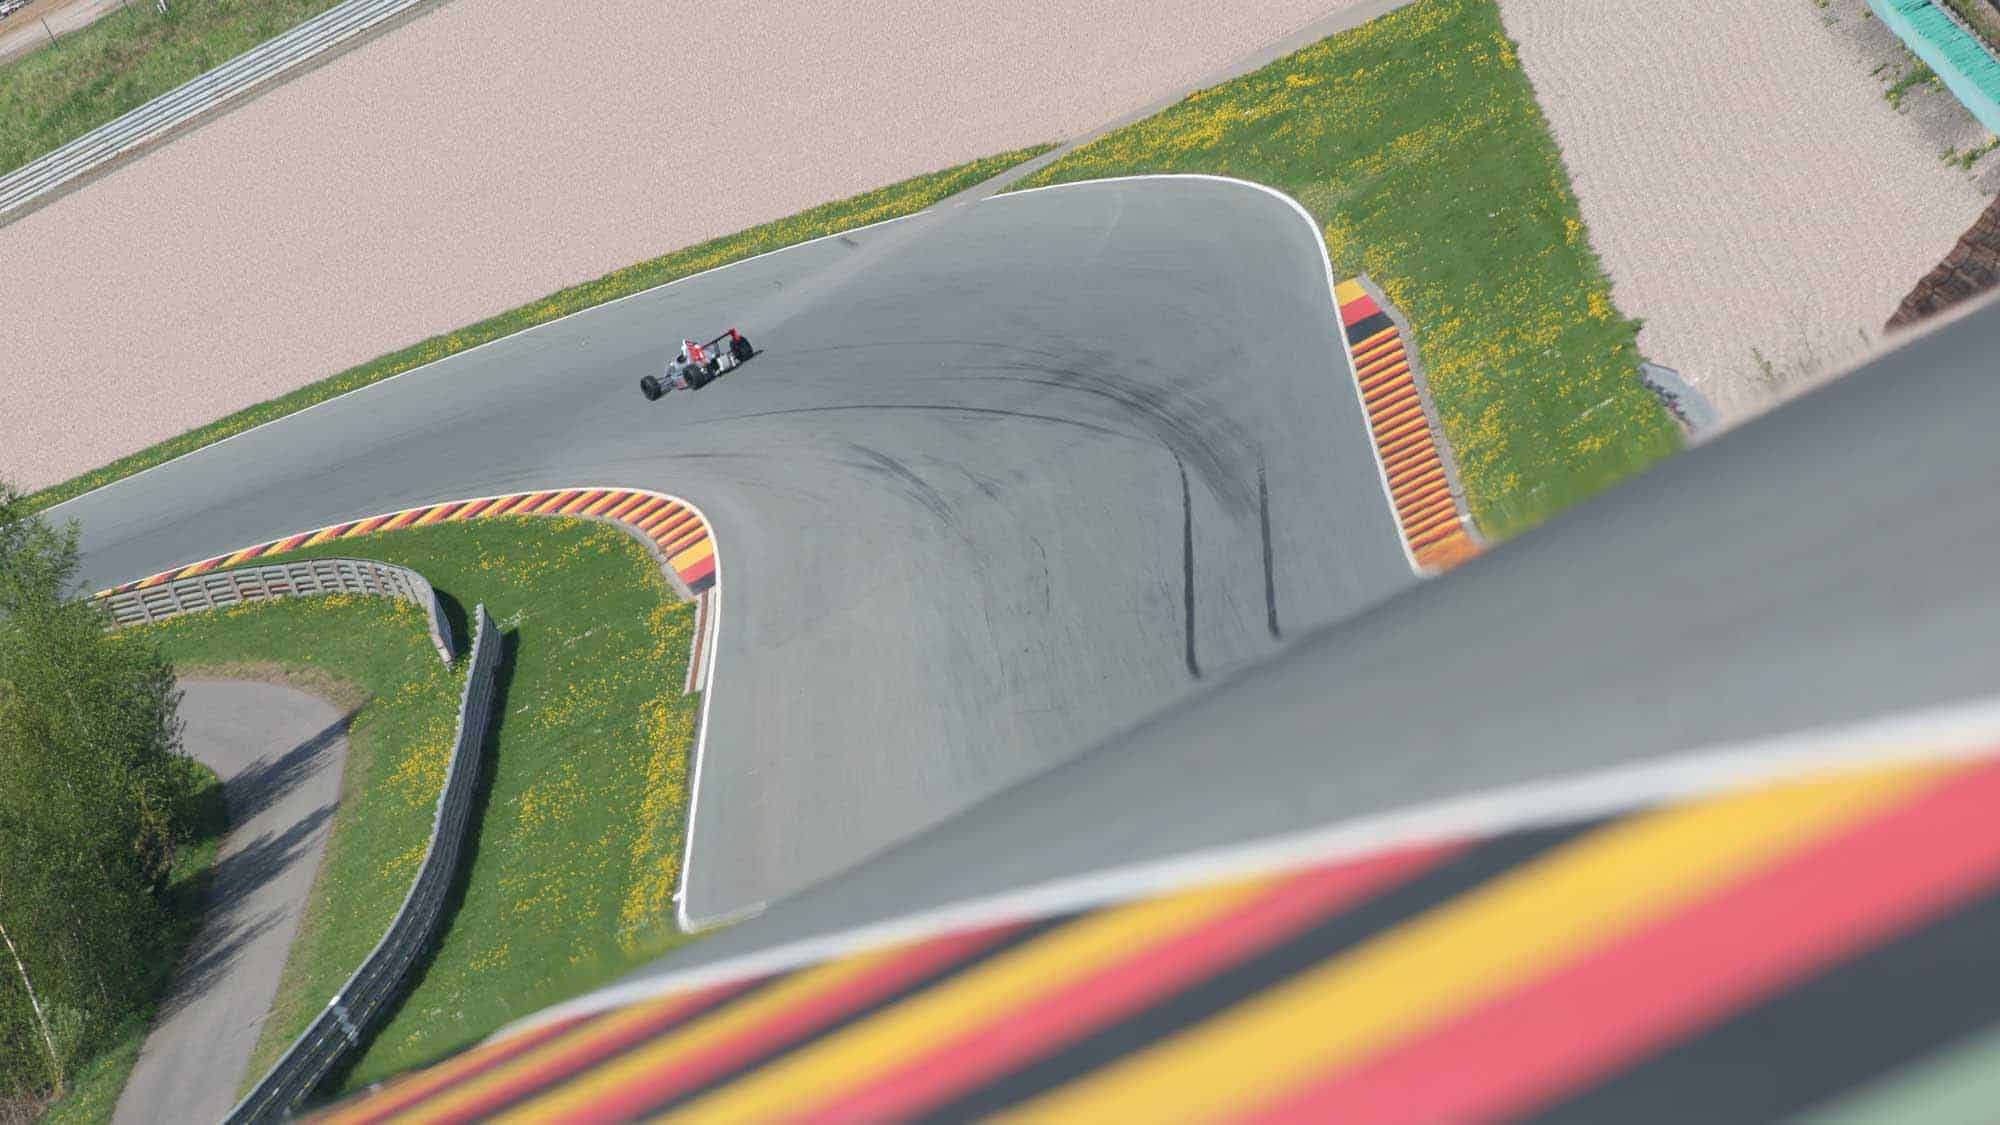 Sachsenring 169 01 - PROJECTS